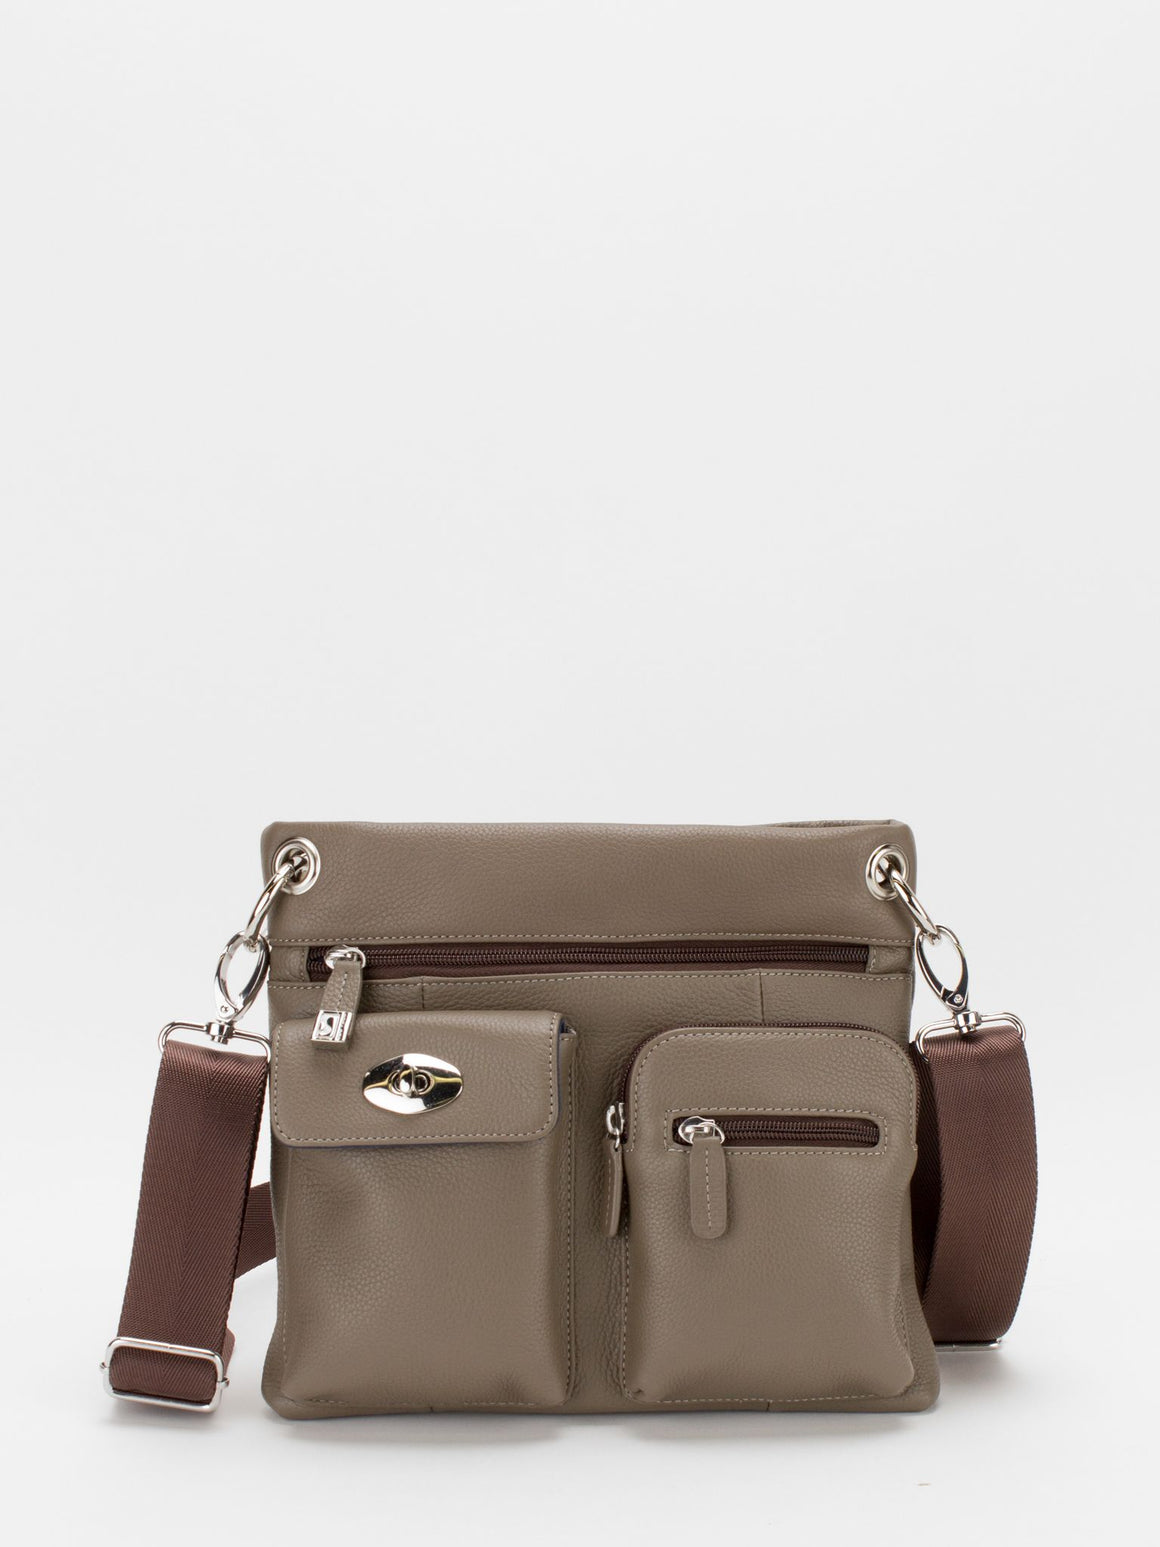 Presley Leather Crossbody - Latte